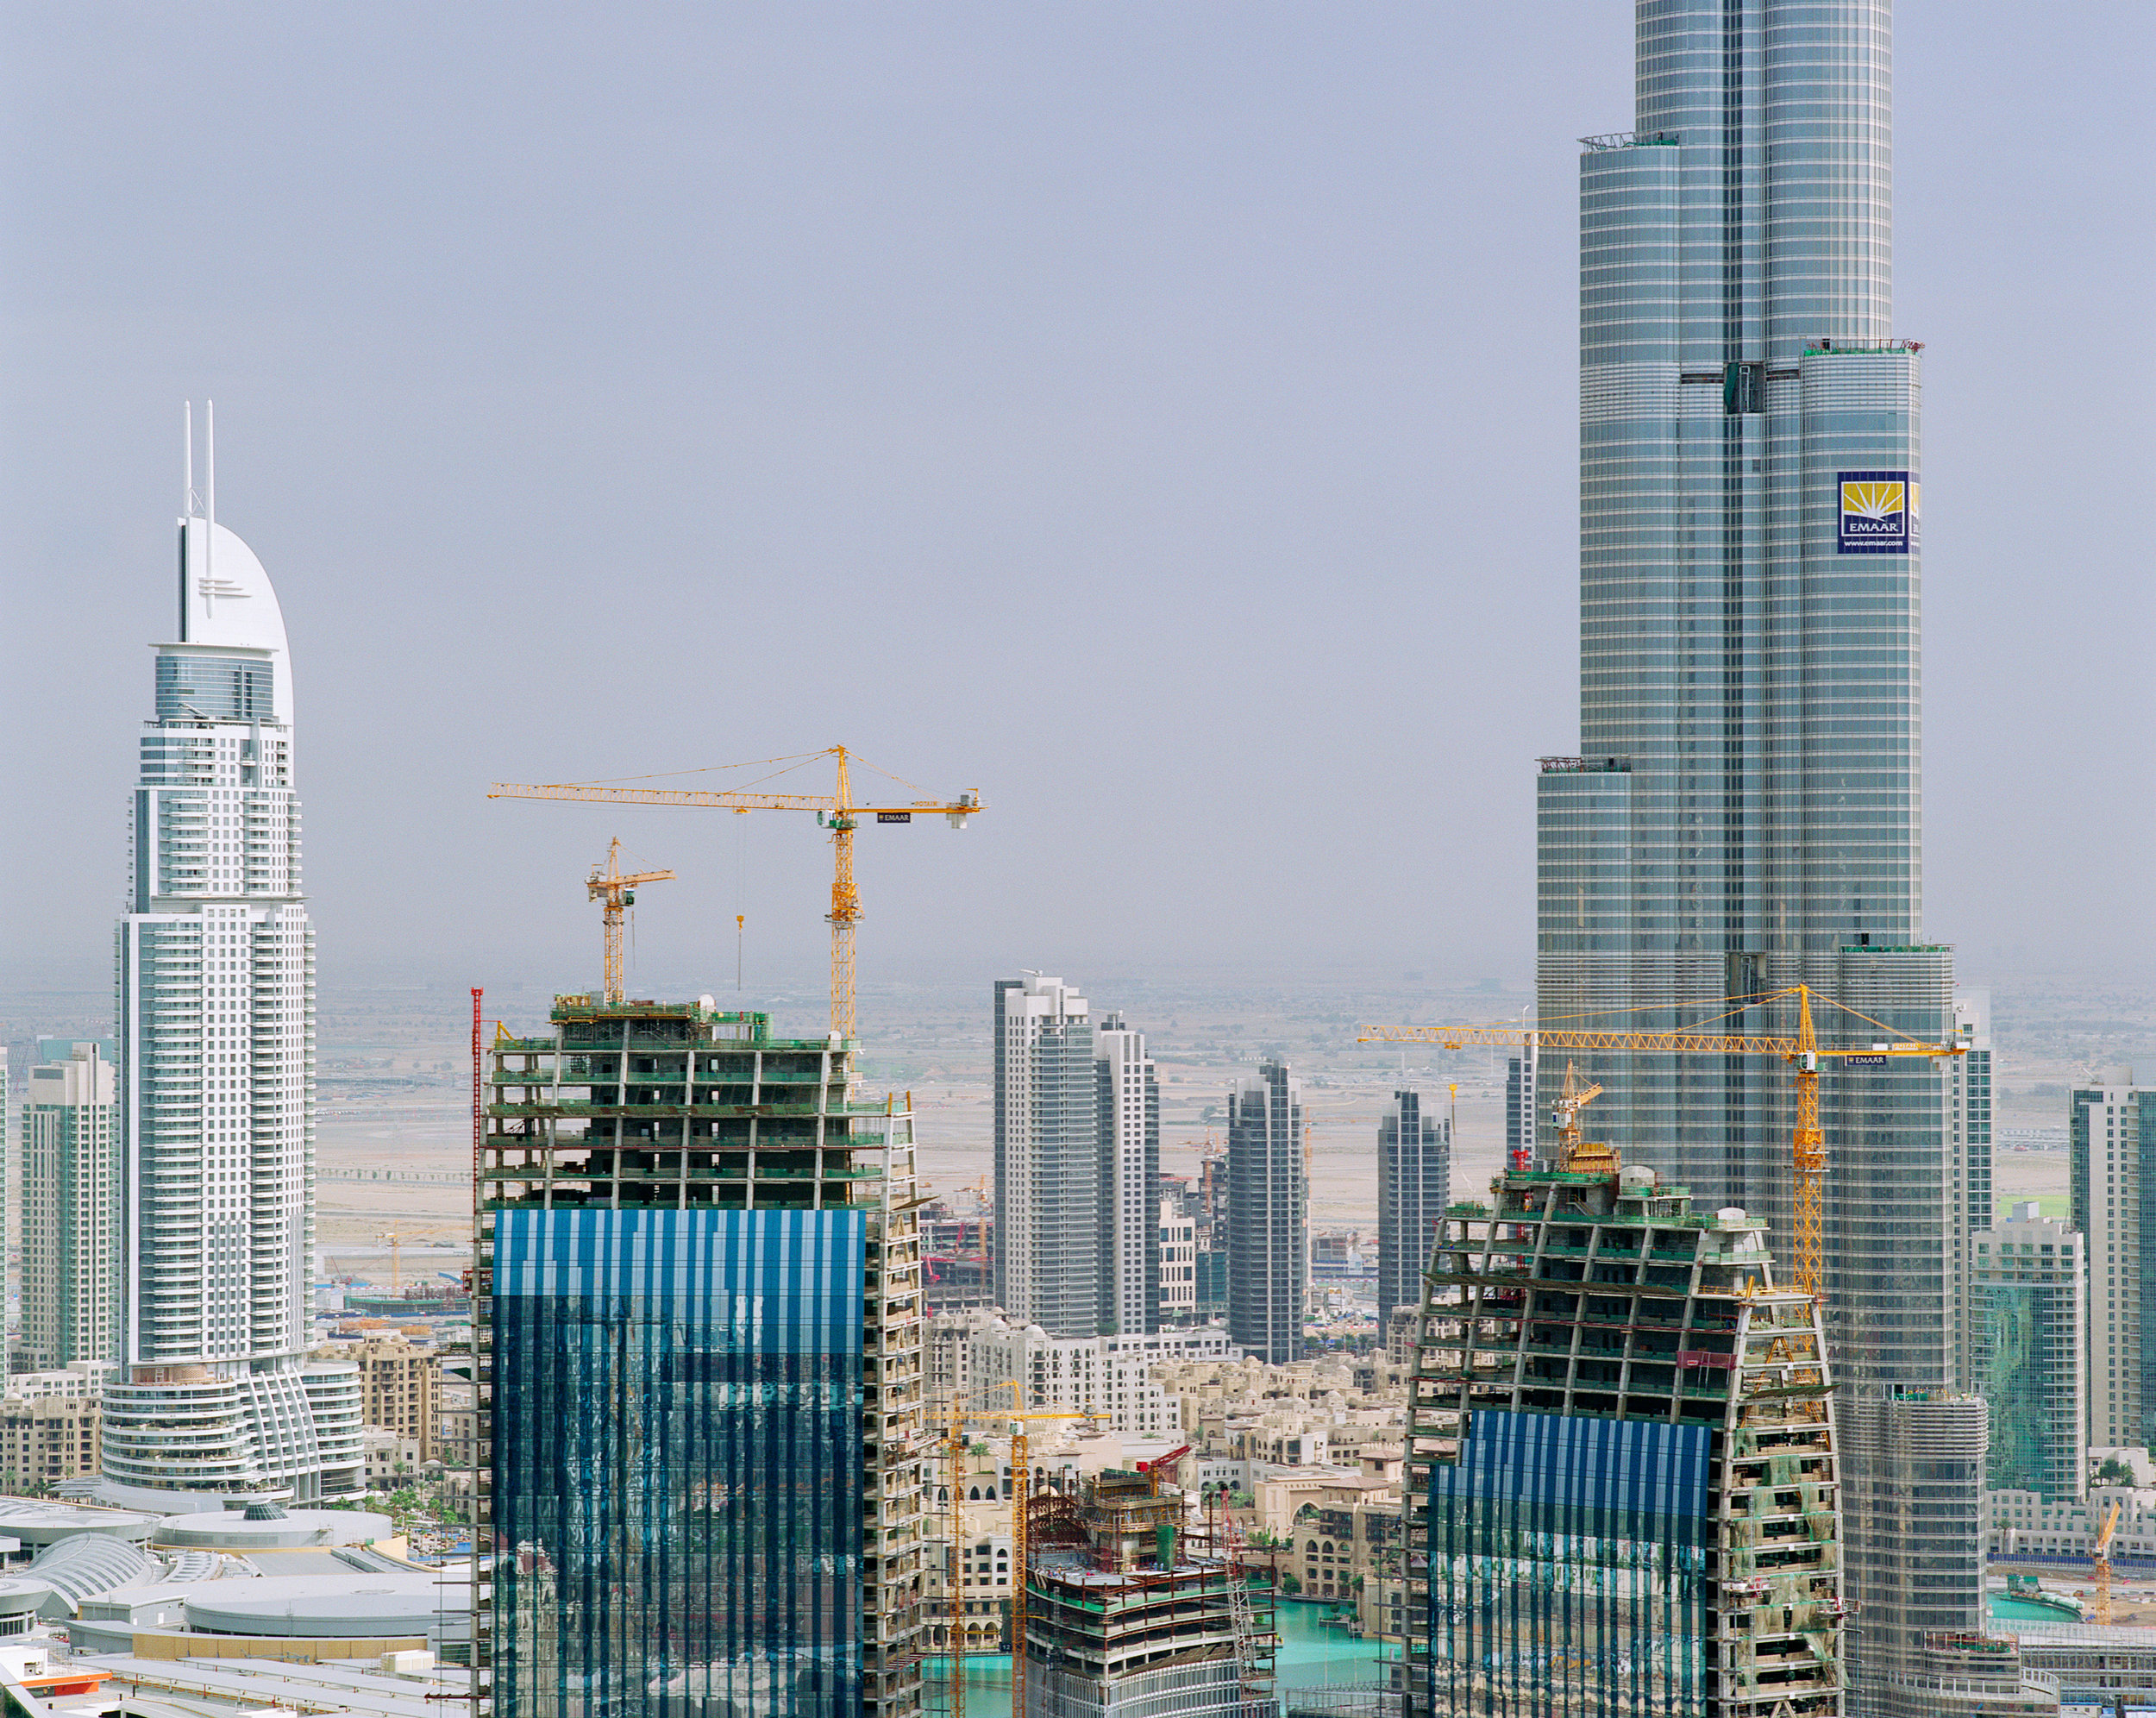 Connie Samaras,  After the American Century: Downtown Burj Dubai, Day, 2009   Digital pigment print, 40 x 48 inches, edition of 5   Inquire